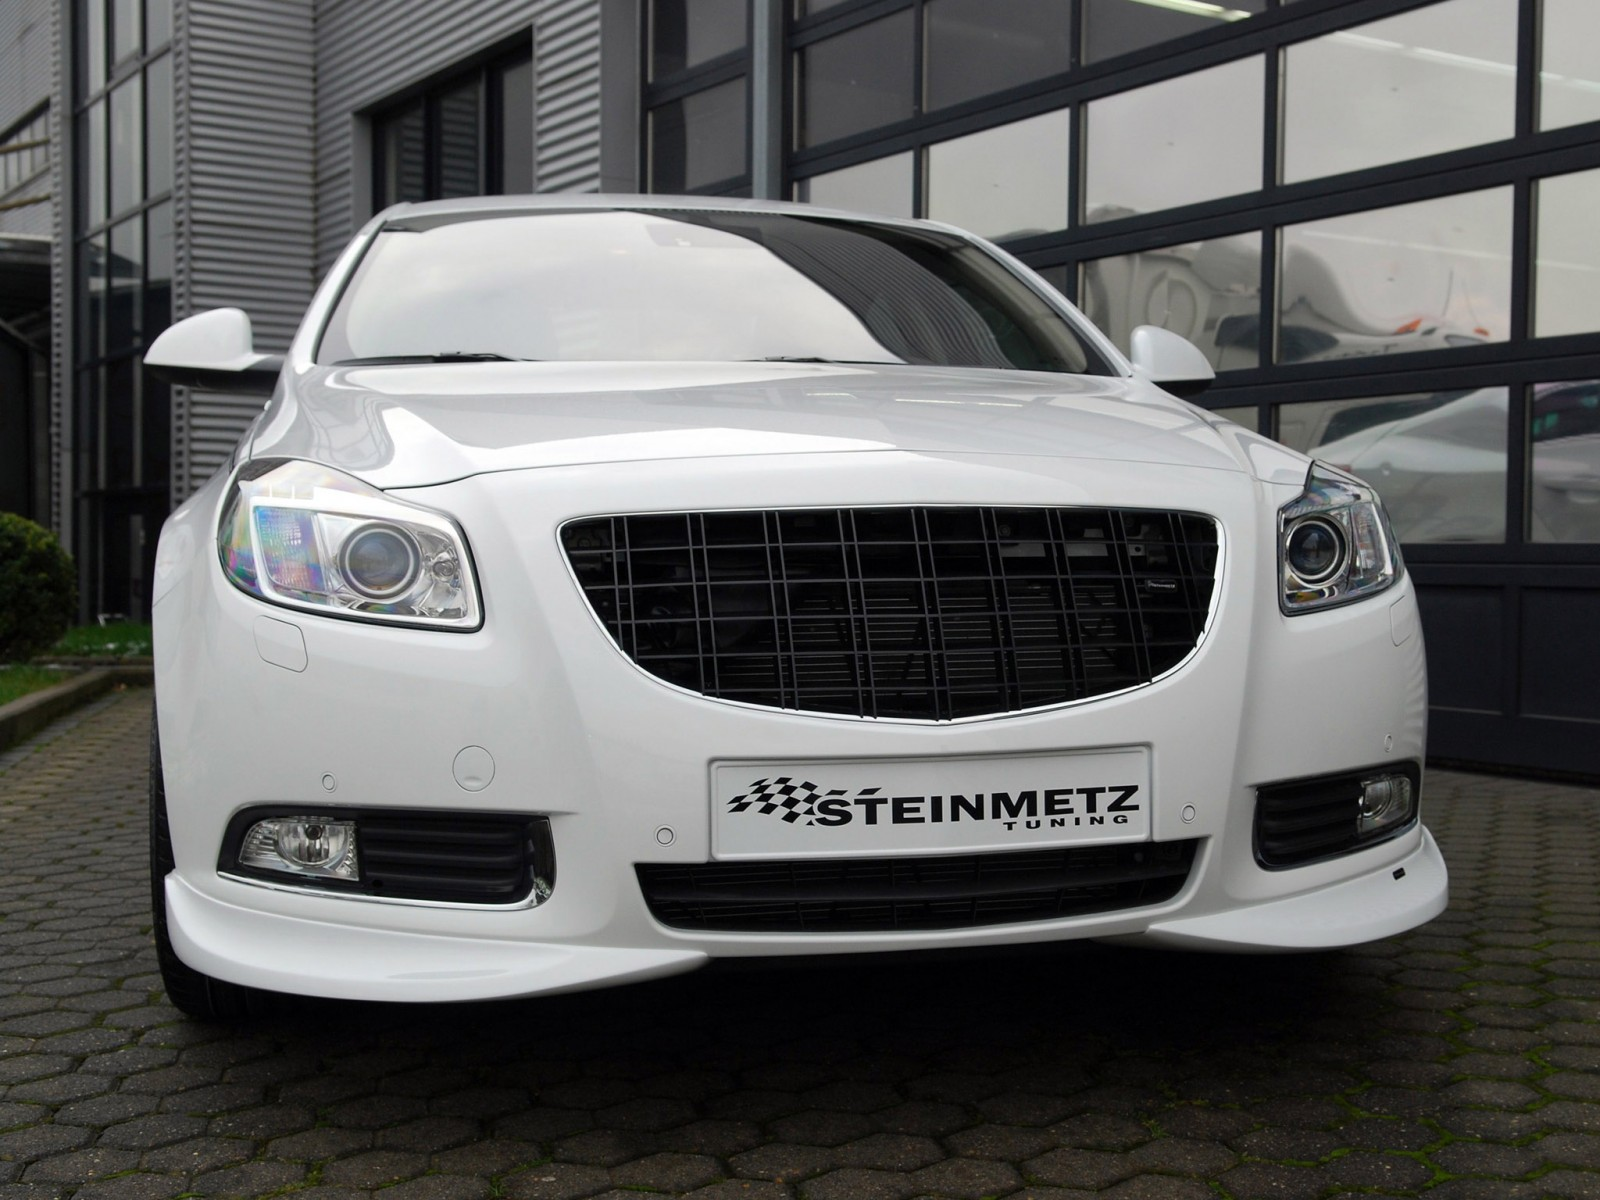 Steinmetz Opel Insignia photo 59926